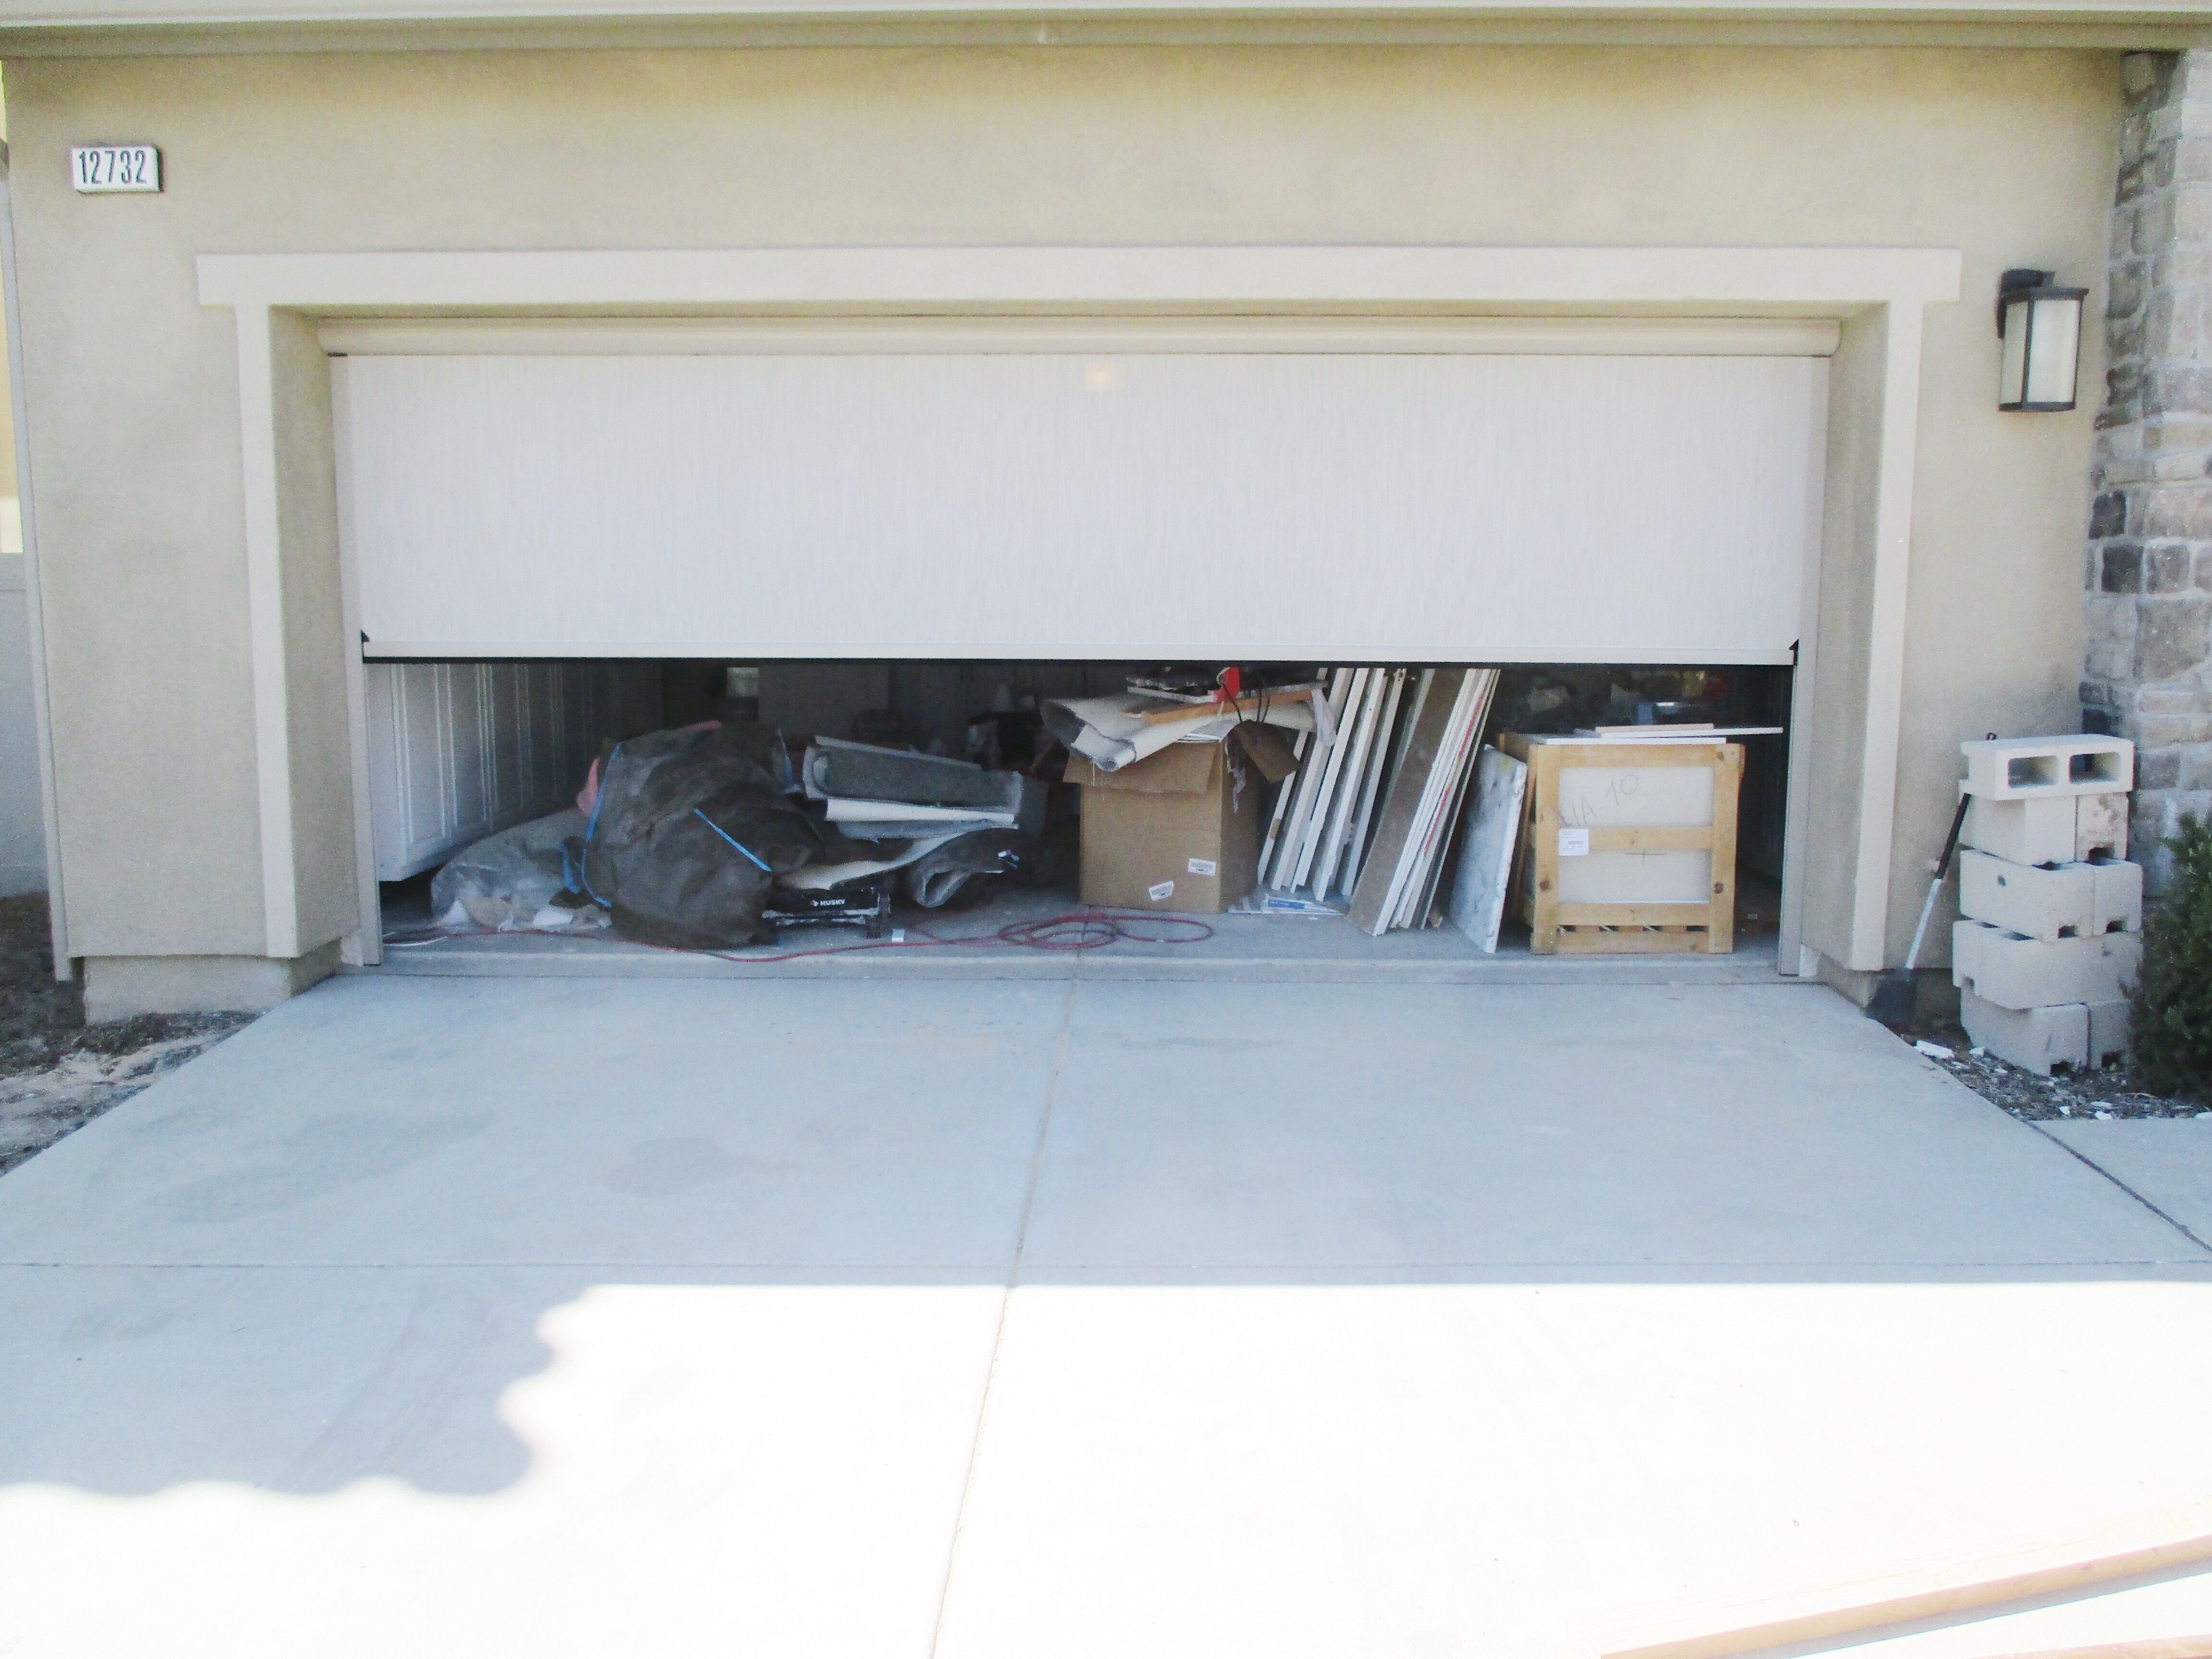 In This Southern California Heat Ventilating Your Garage Is Absolutely Necessary With A Motorized Power Sc Garage Screen Door Solar Screens Shutters Exterior